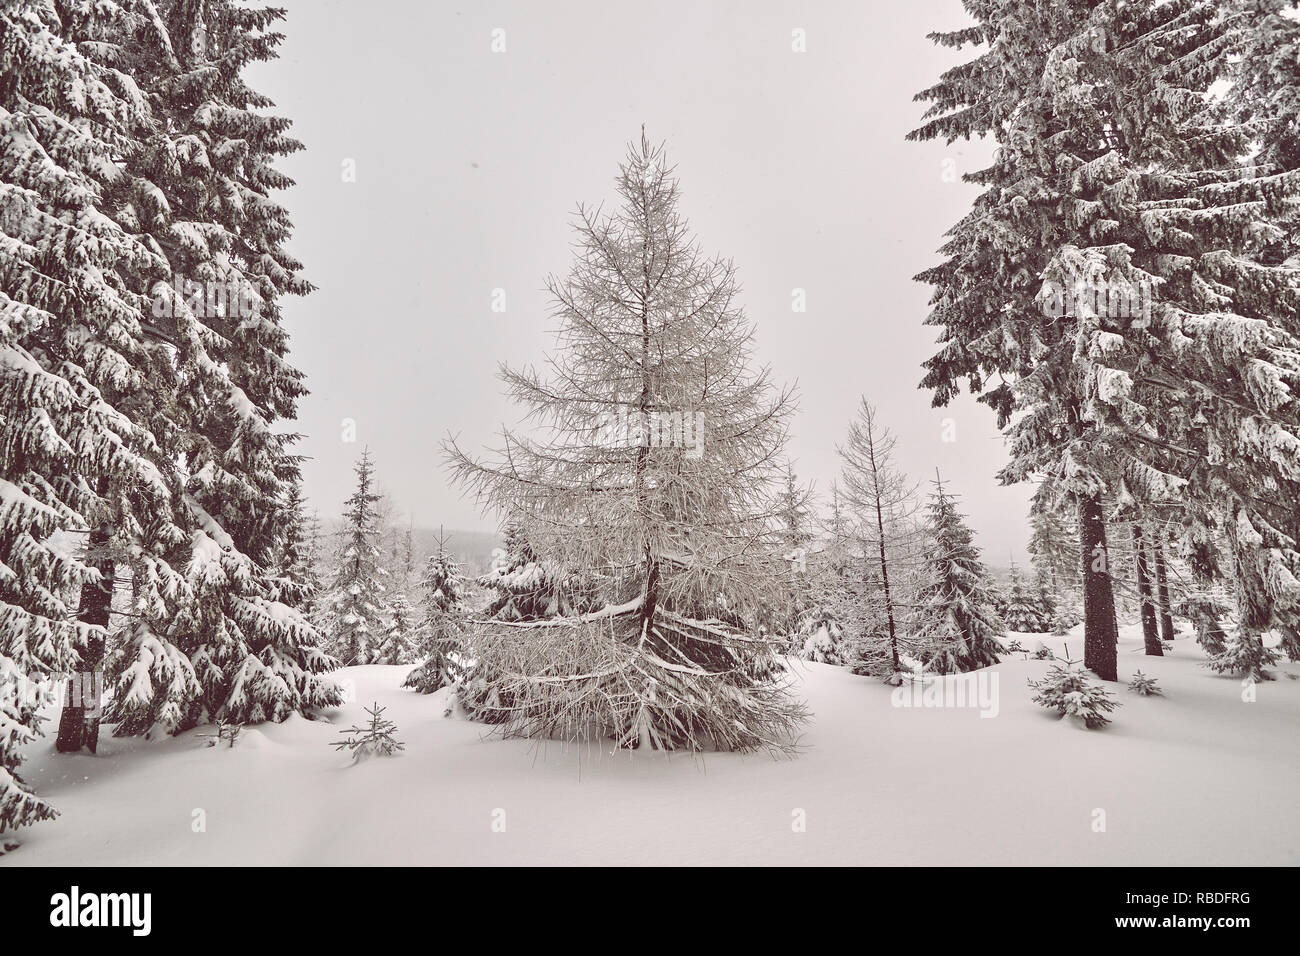 Winter landscape after snowfalls, retro color toning applied. - Stock Image